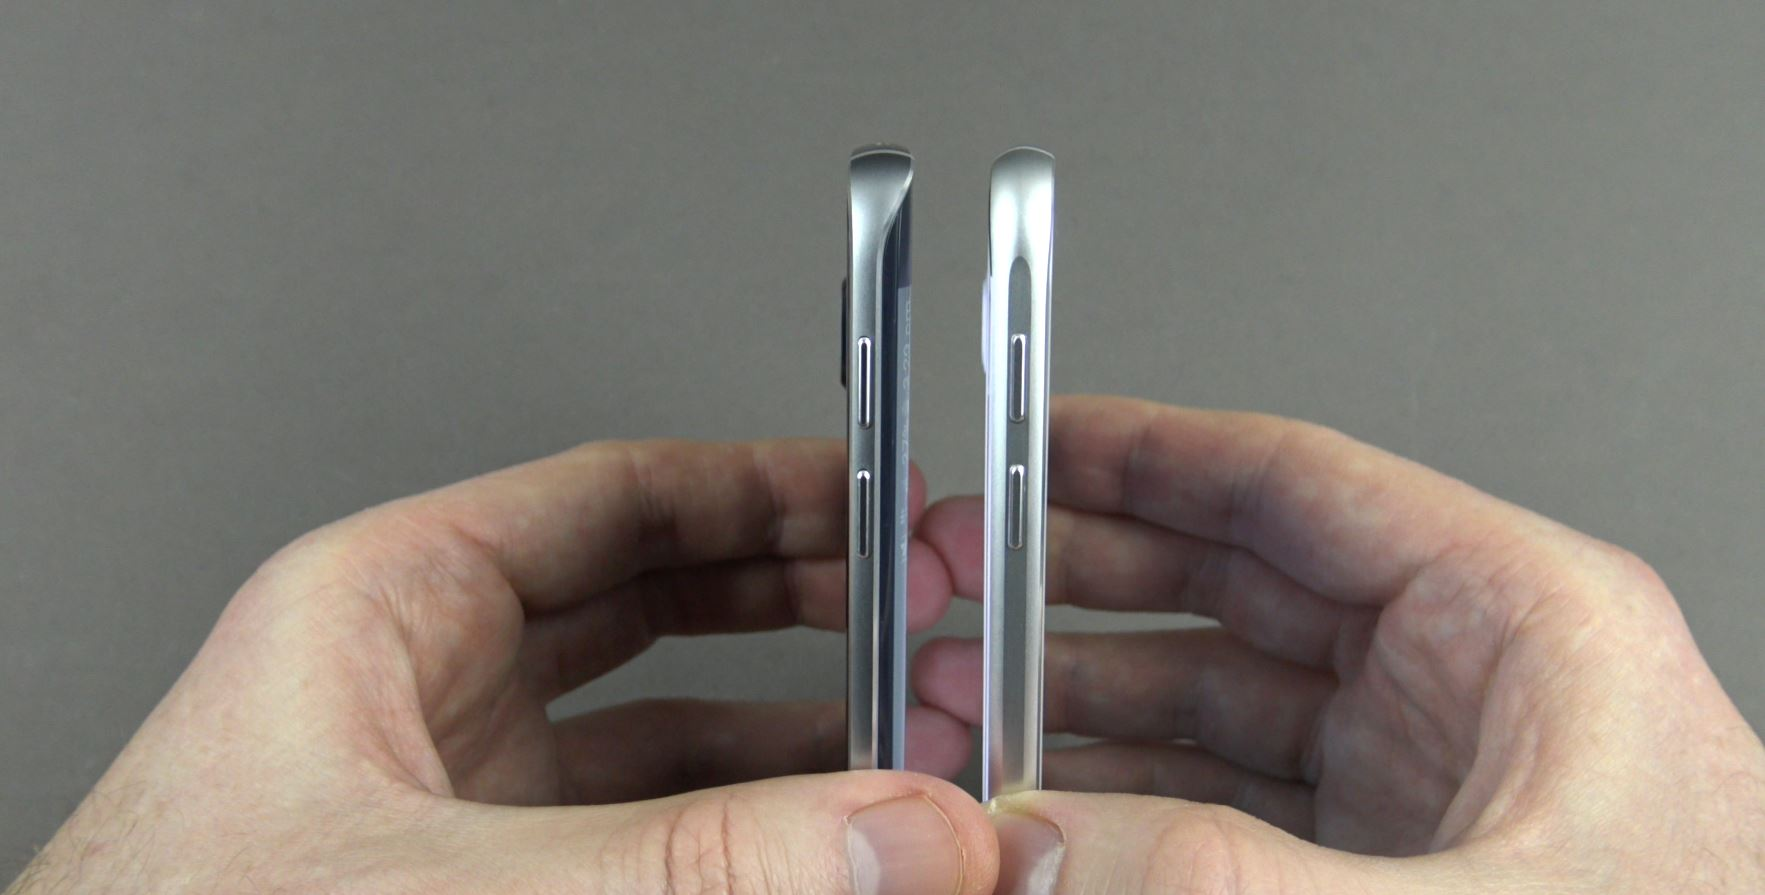 Samsung Galaxy S6 & Samsung Galaxy S6 Edge